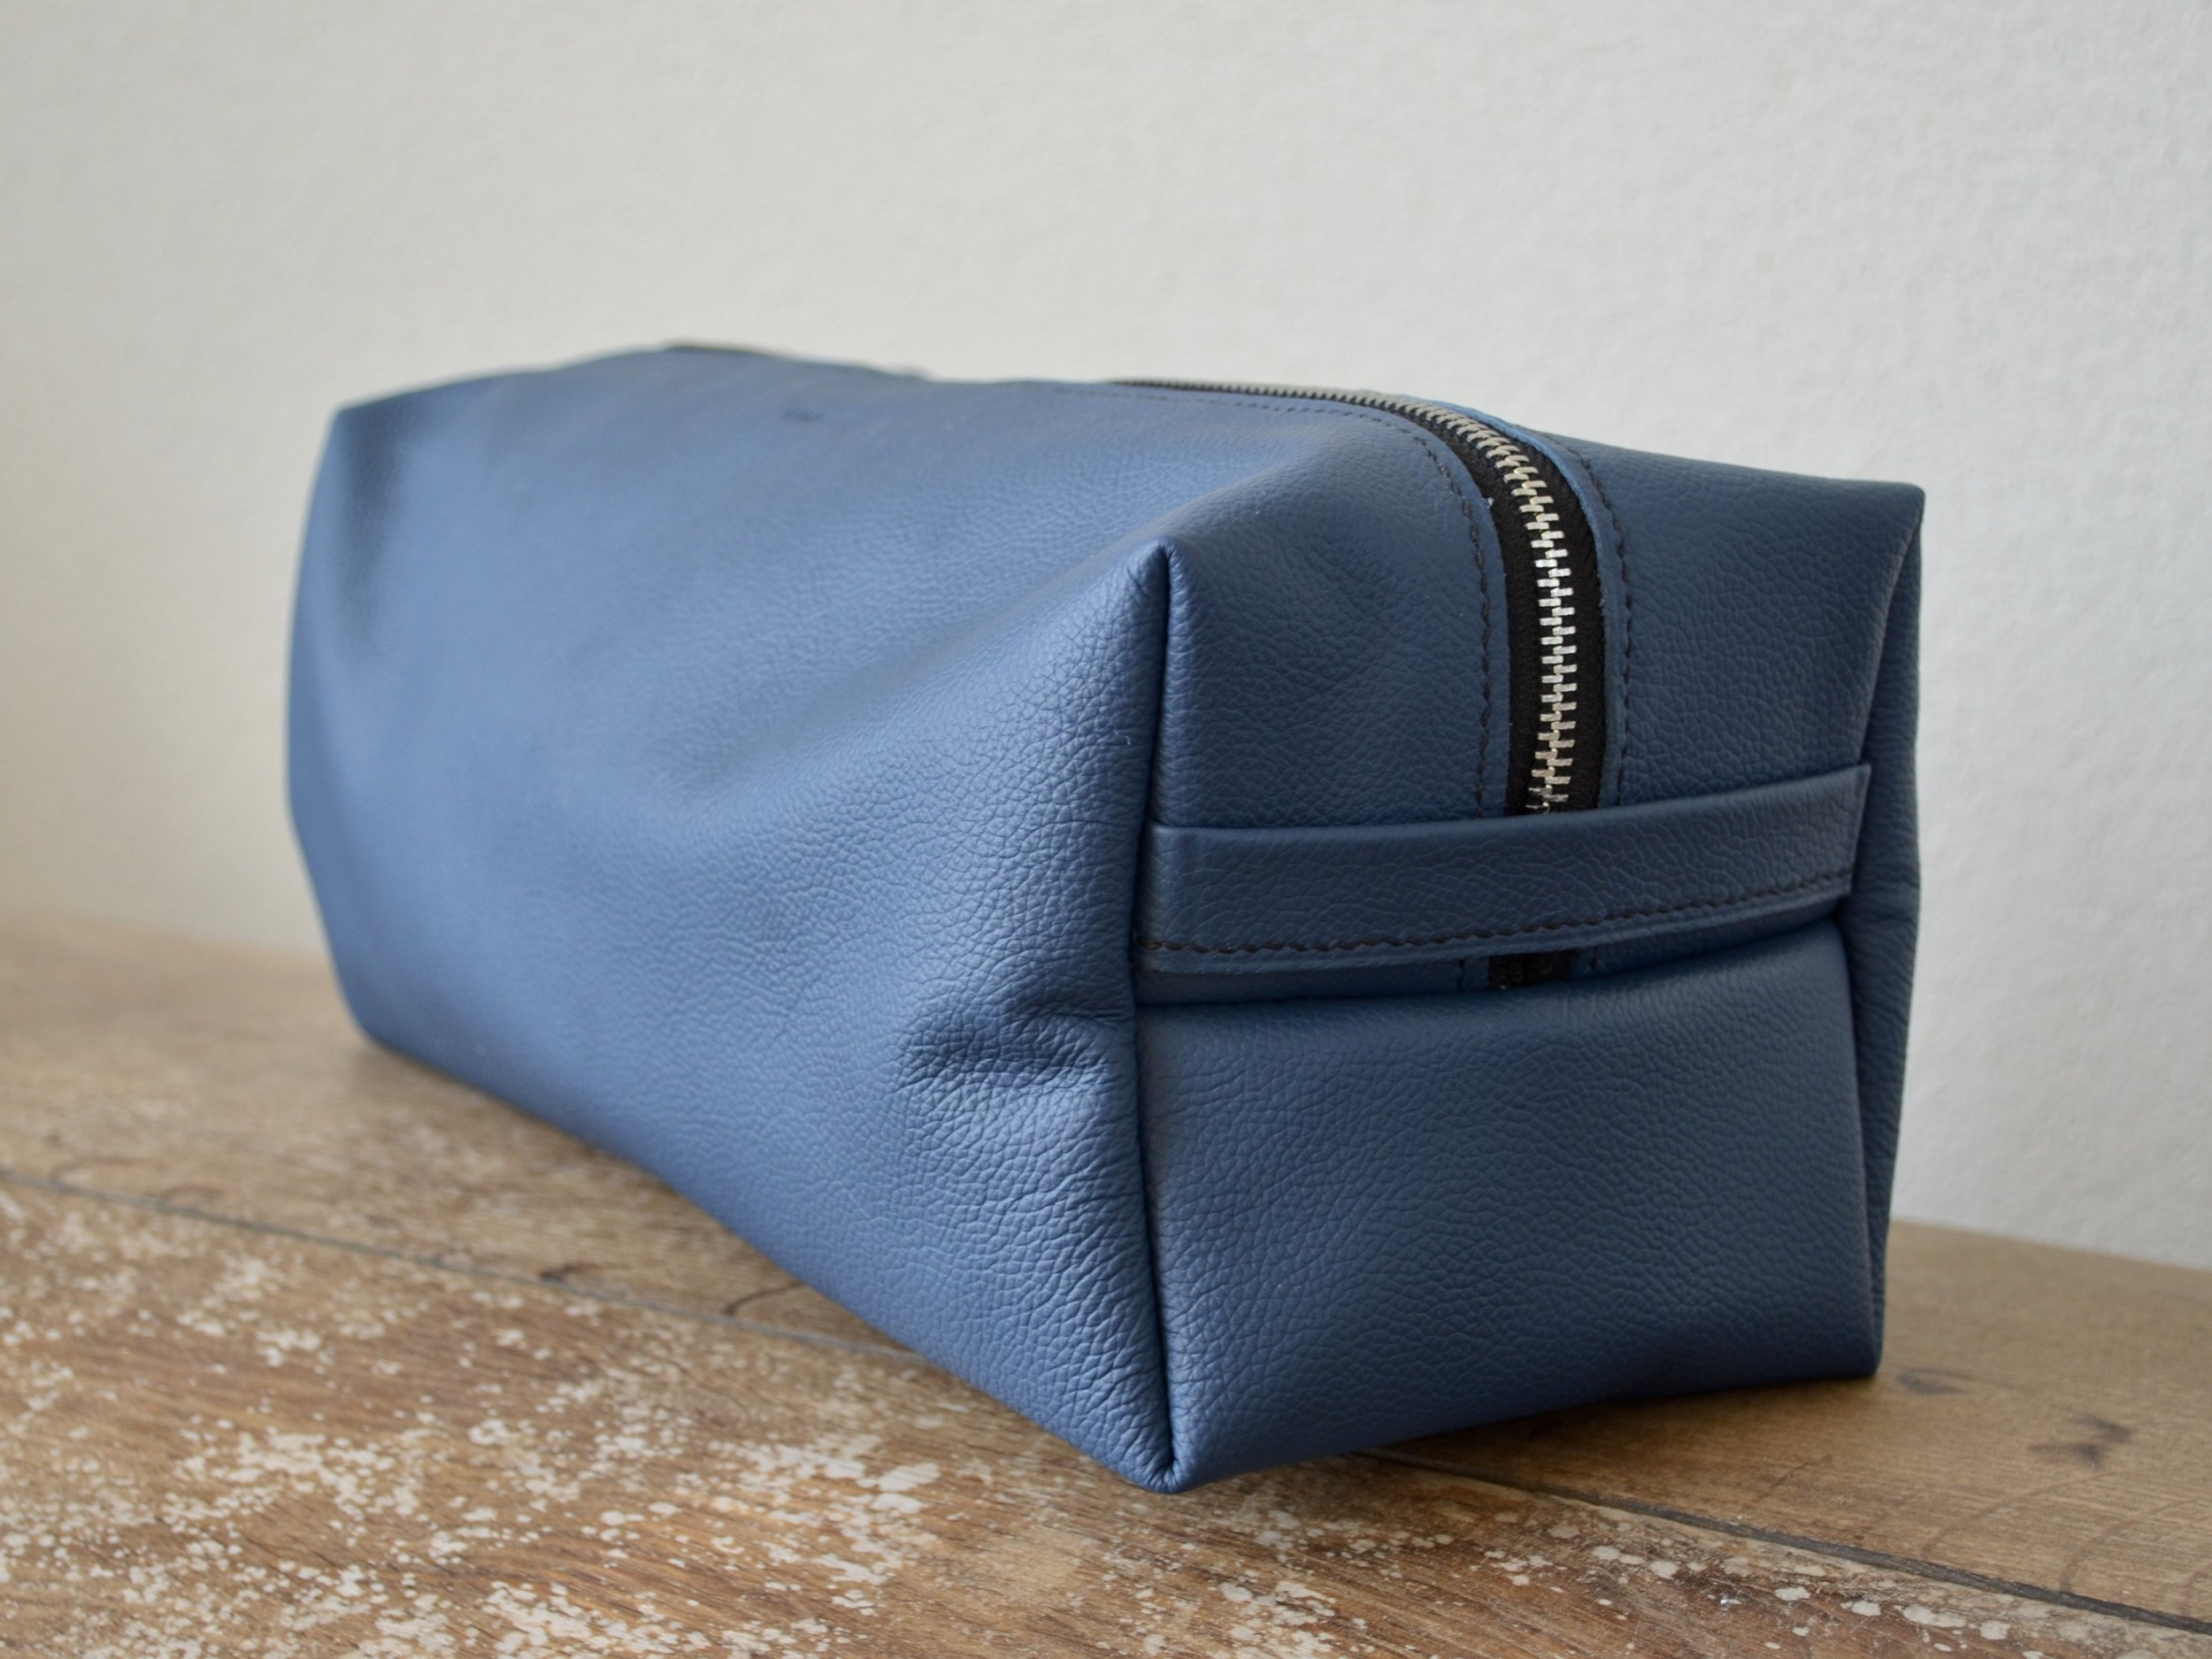 Mens Dopp Kit with Oil Cloth Lining